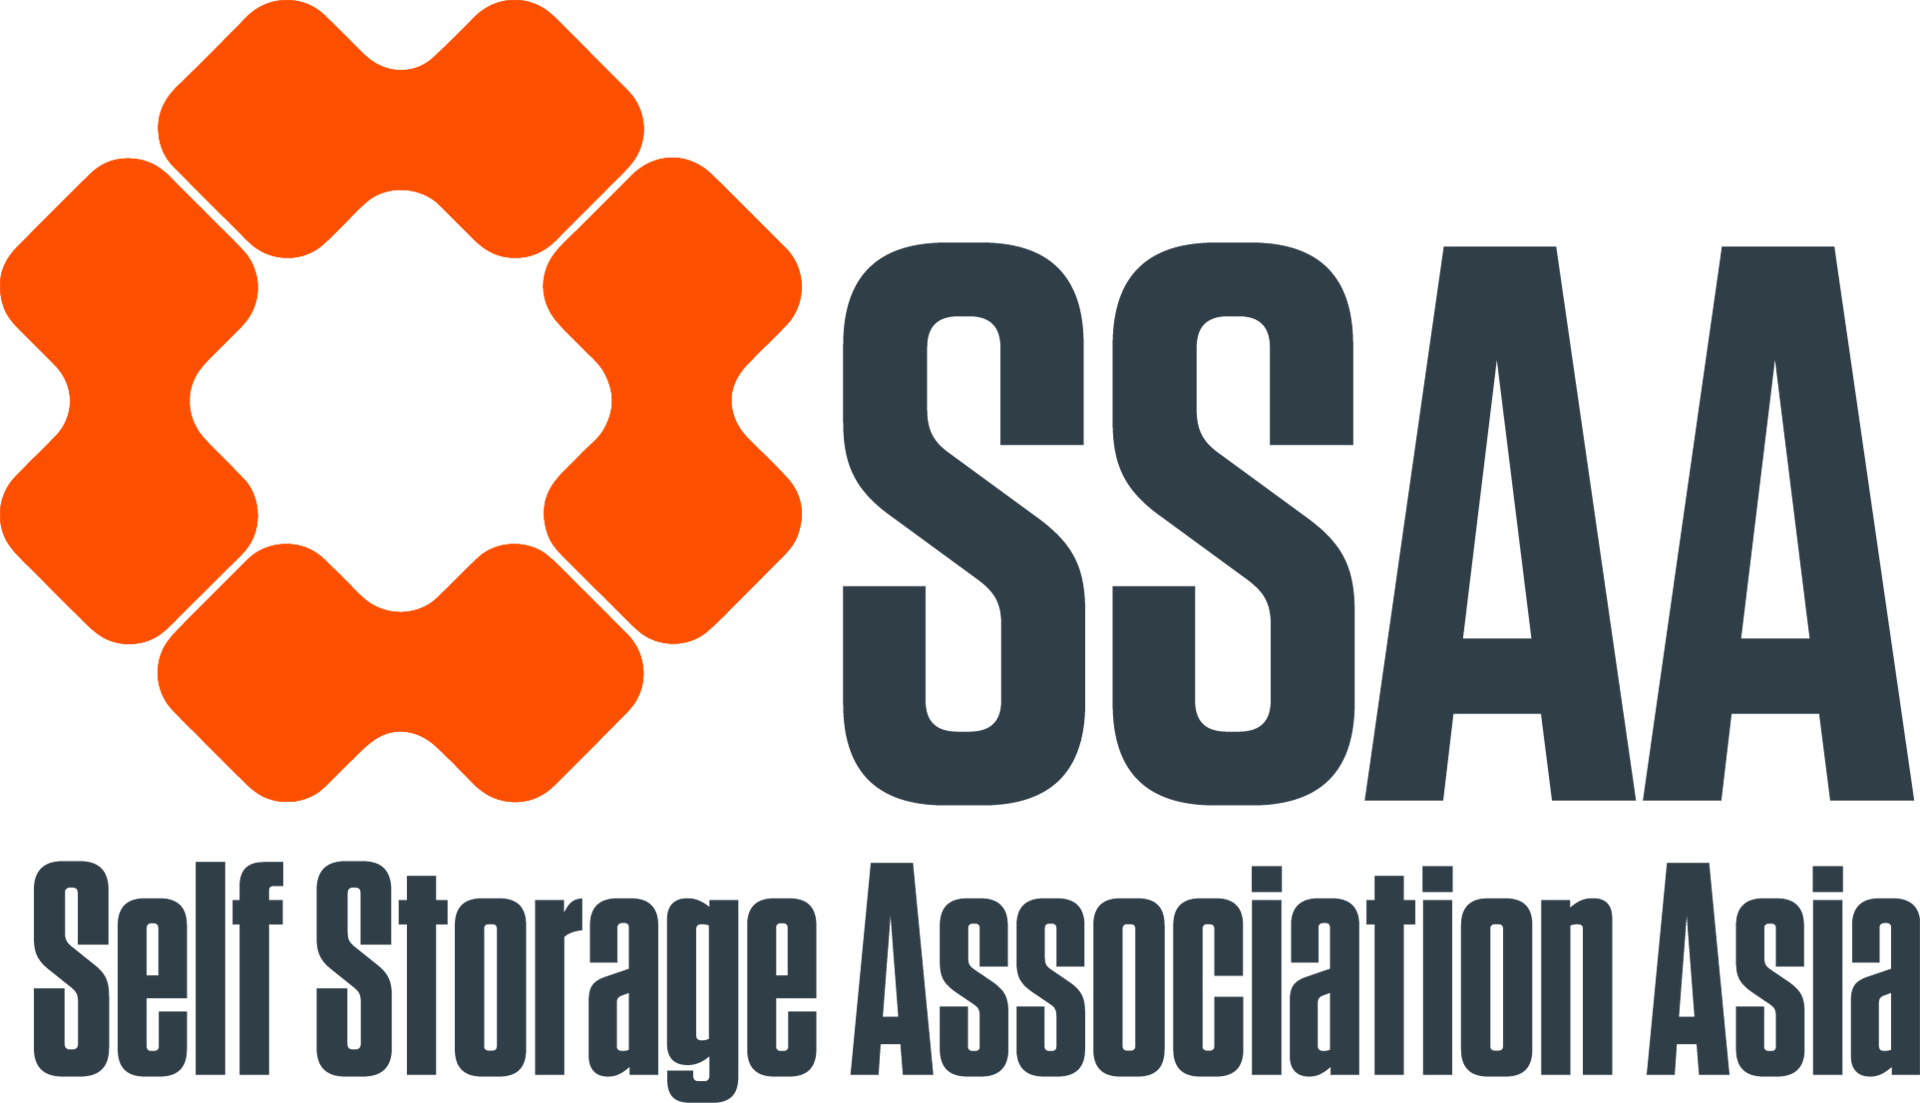 SSAA logo red large